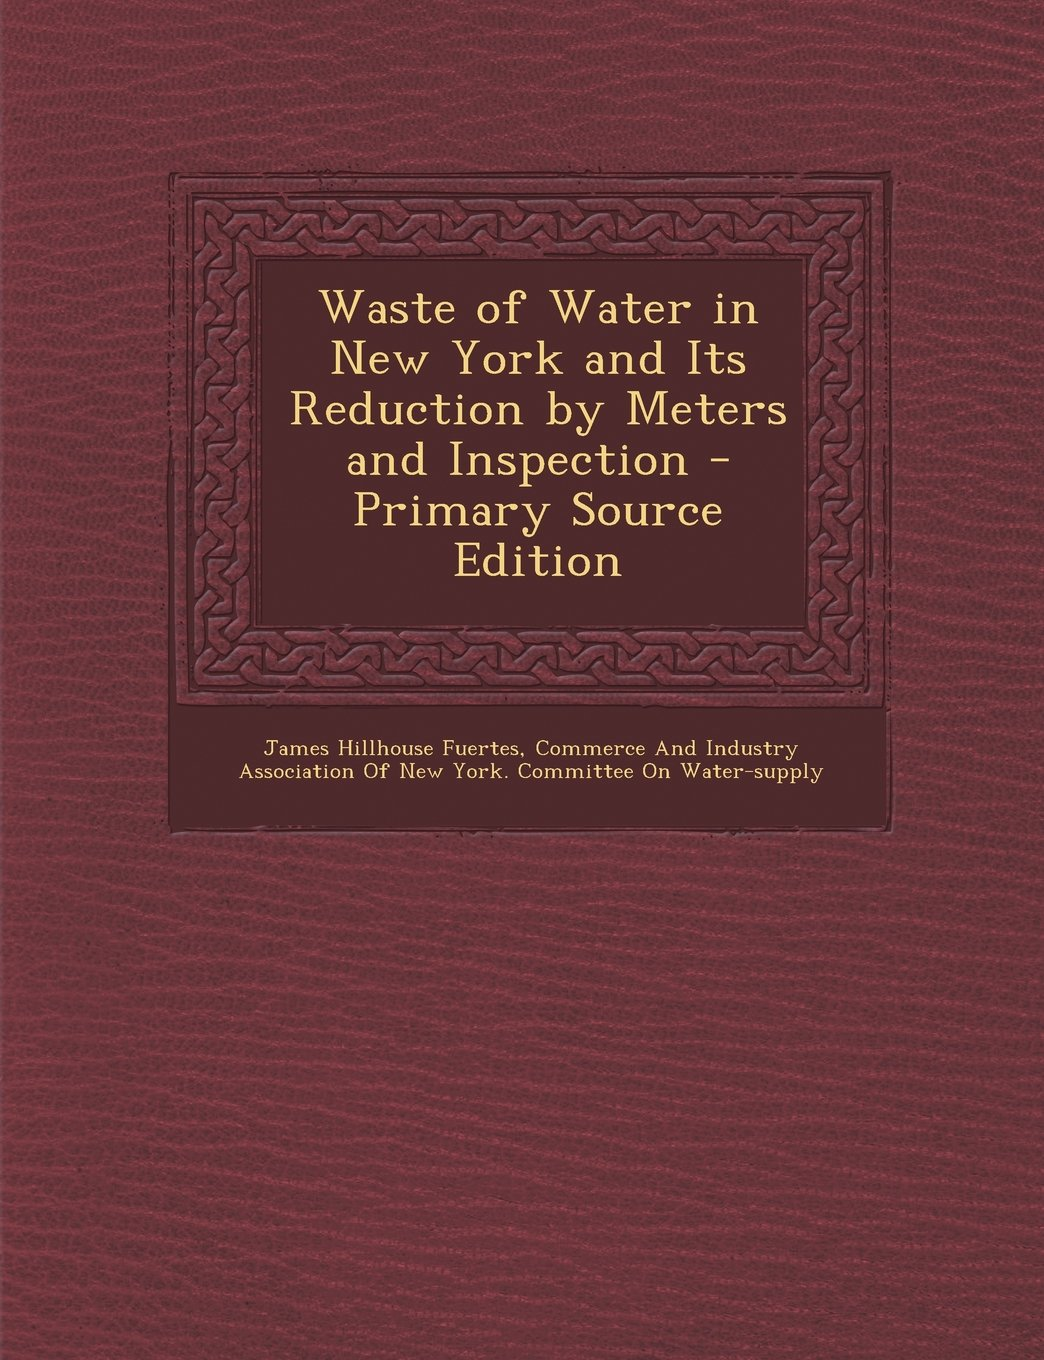 Download Waste of Water in New York and Its Reduction by Meters and Inspection PDF